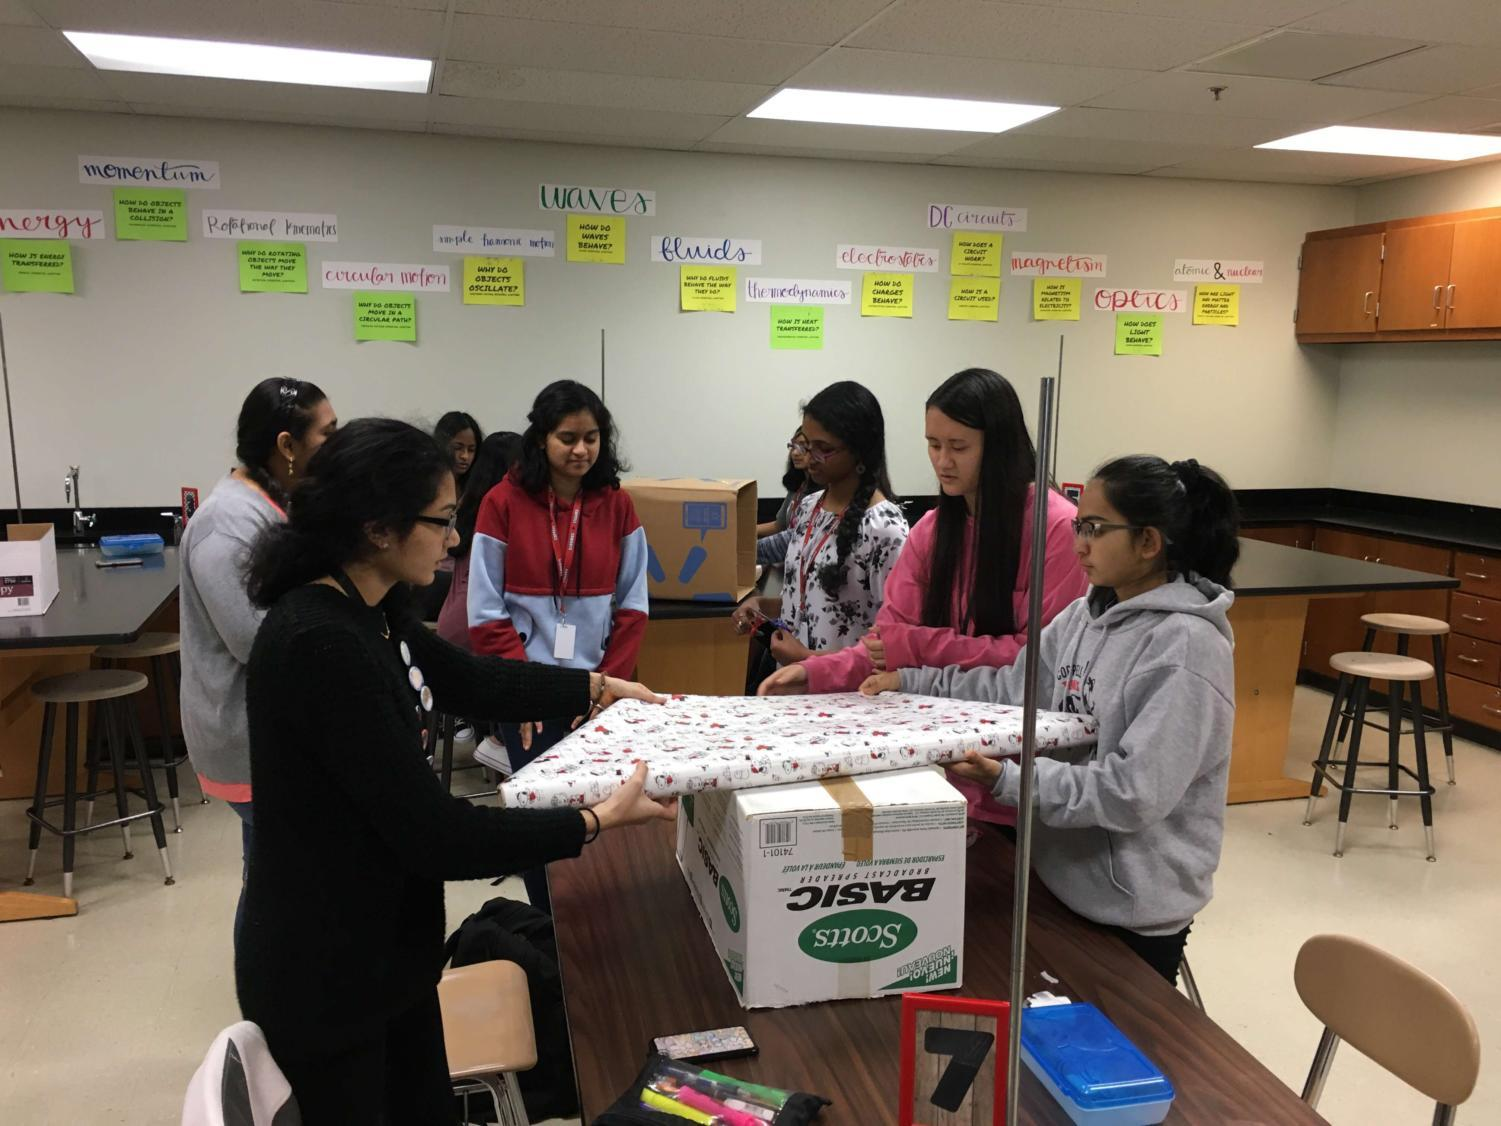 Coppell High School sophomores Shriya Vanparia, Dania Nesar, Trisha Narwekar, Harsha Alexander, Eva Theel and Rifhat Sindhi wrap donation boxes for their Habitat for Humanity supply drive at their first club meeting on Thursday, Nov. 9. They will be collecting home supplies until Dec. 15.